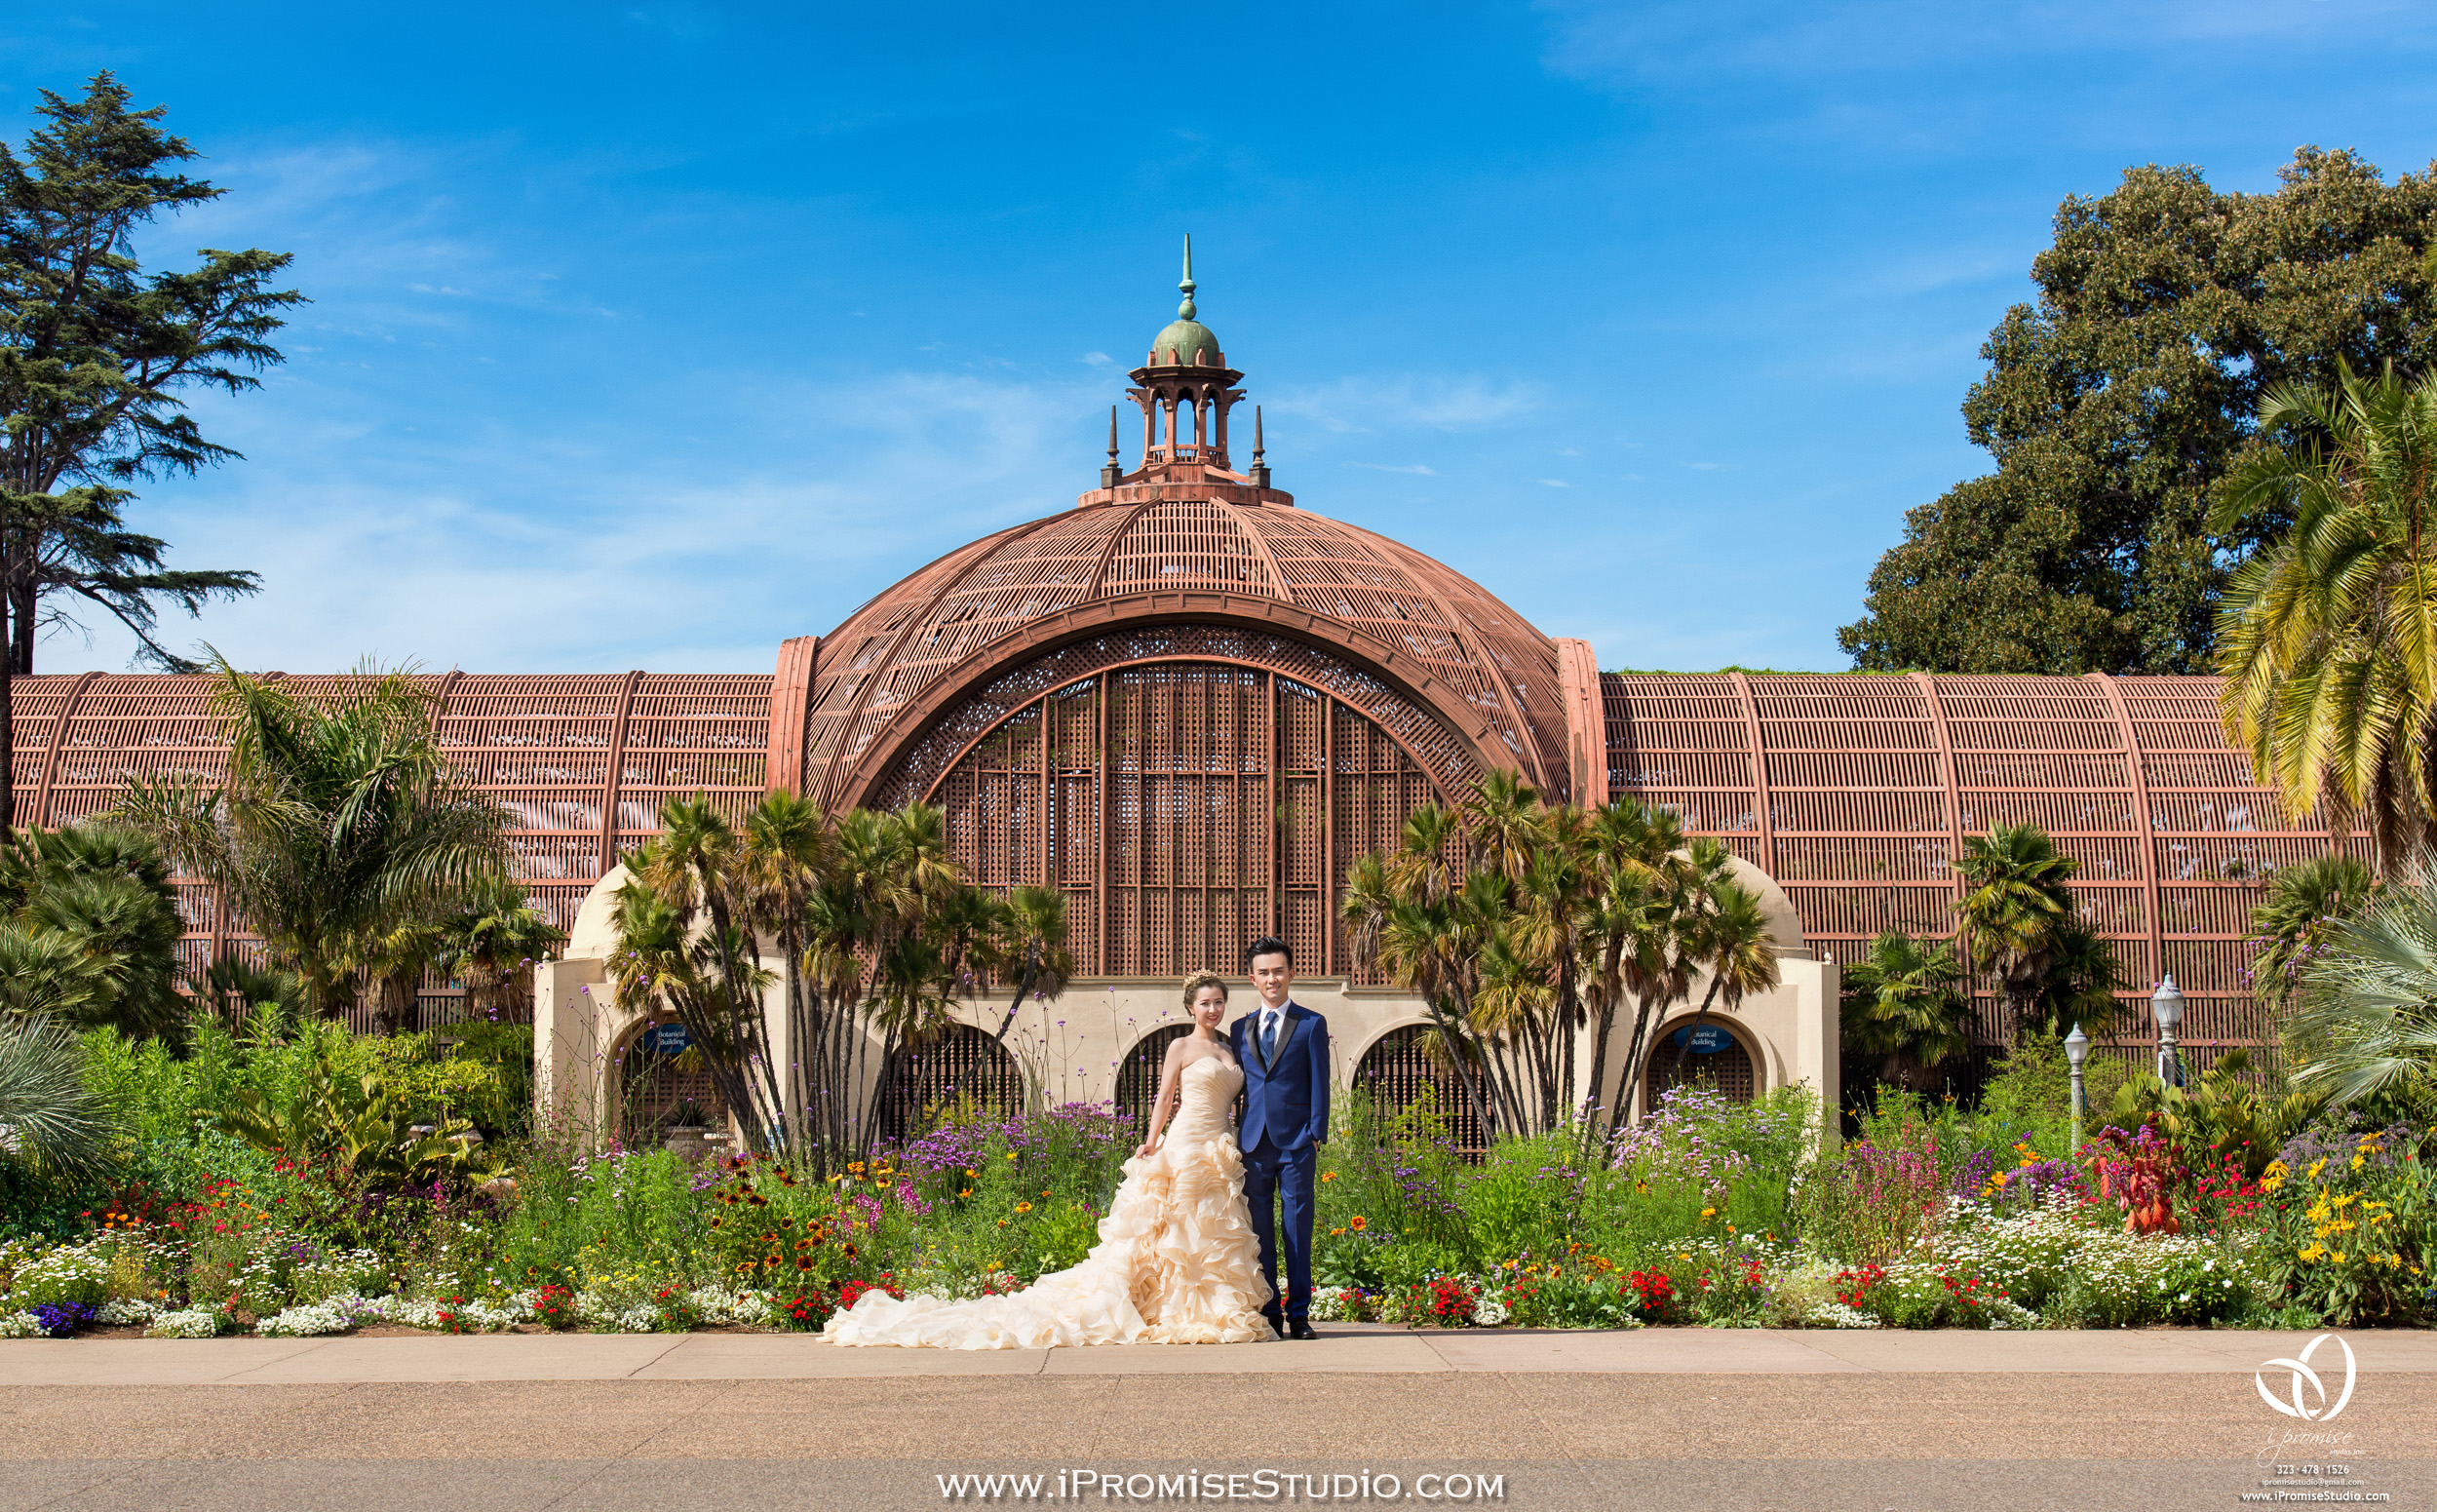 SanDiego Balboa Park-engagement wedding 01.JPG